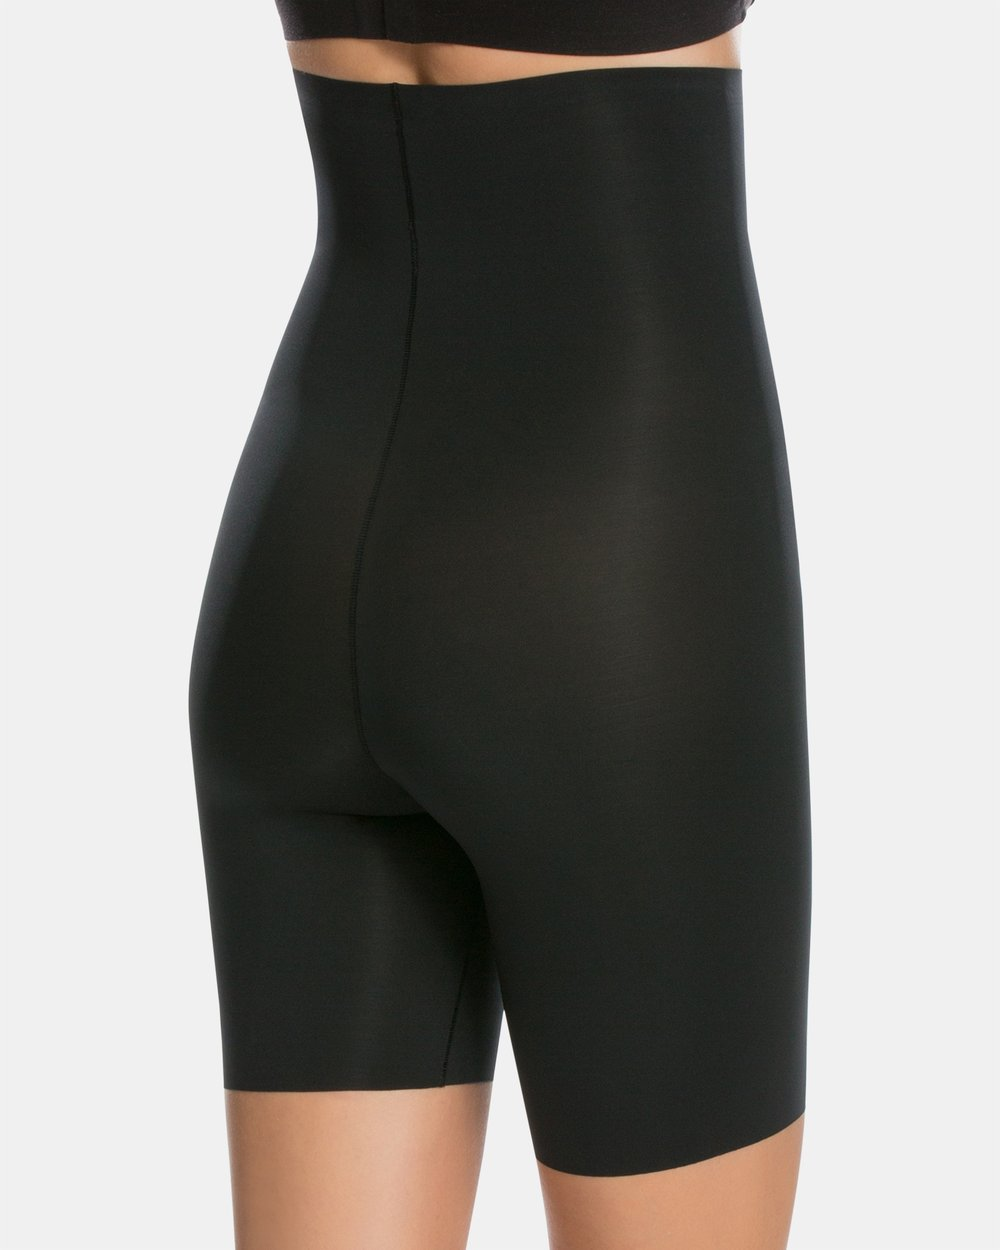 b49d9e356e885 Thinstincts High-Waisted Mid-Thigh Shorts by Spanx Online